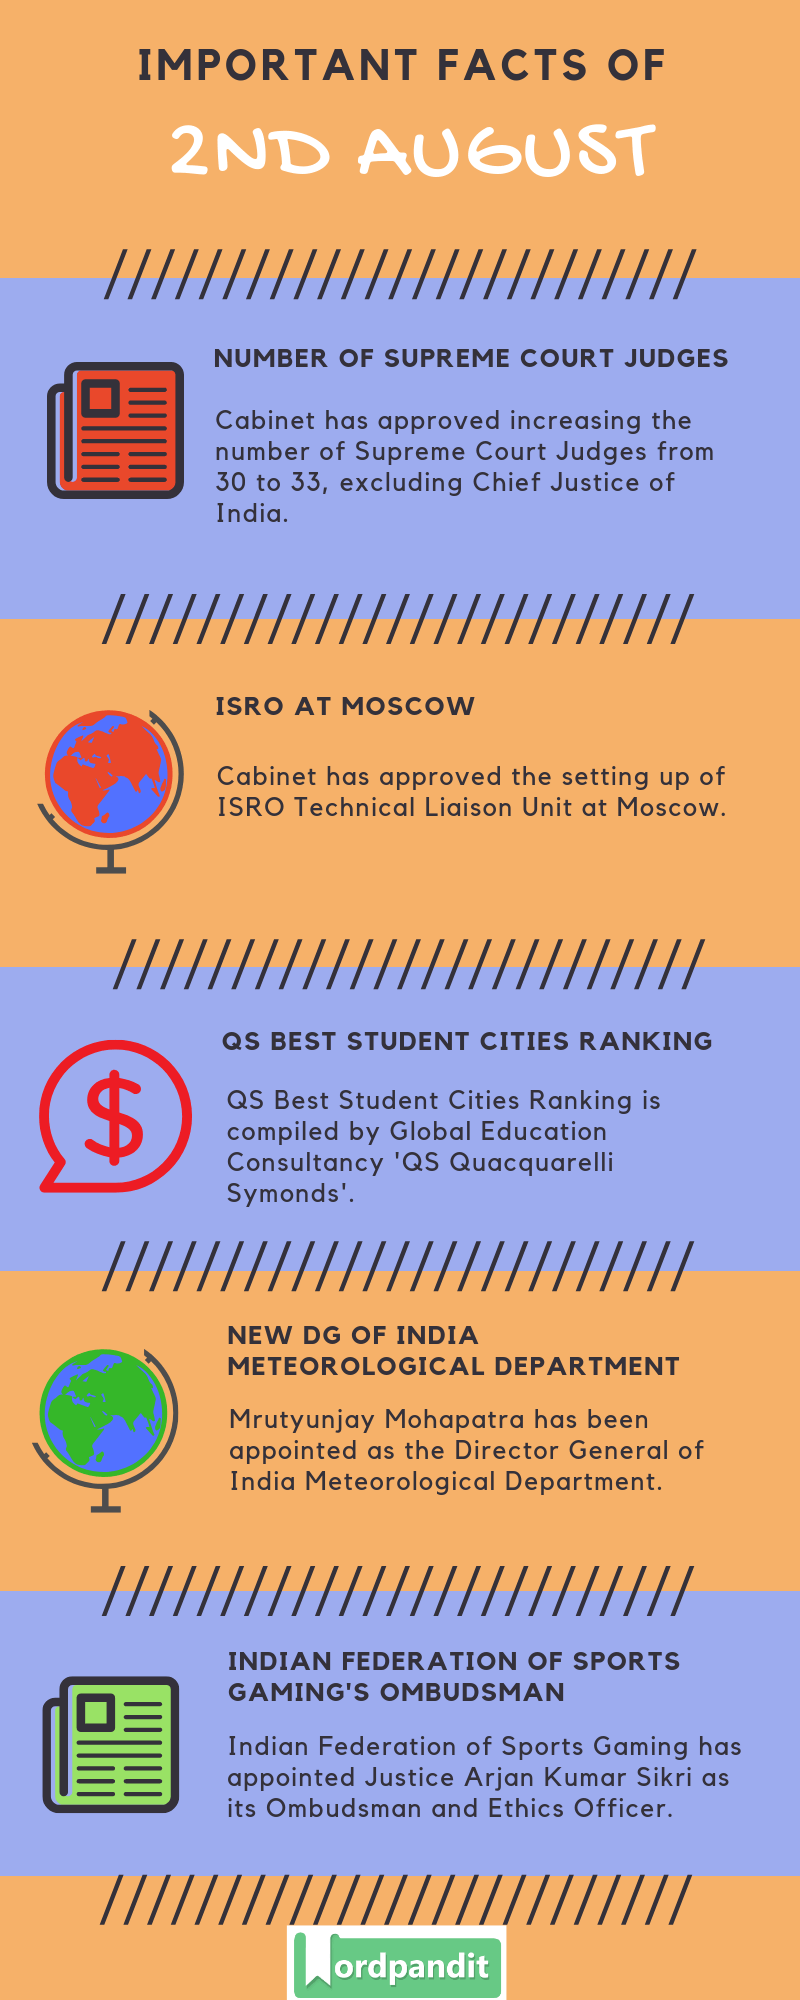 Daily Current Affairs 2 August 2019 Current Affairs Quiz 2 August 2019 Current Affairs Infographic